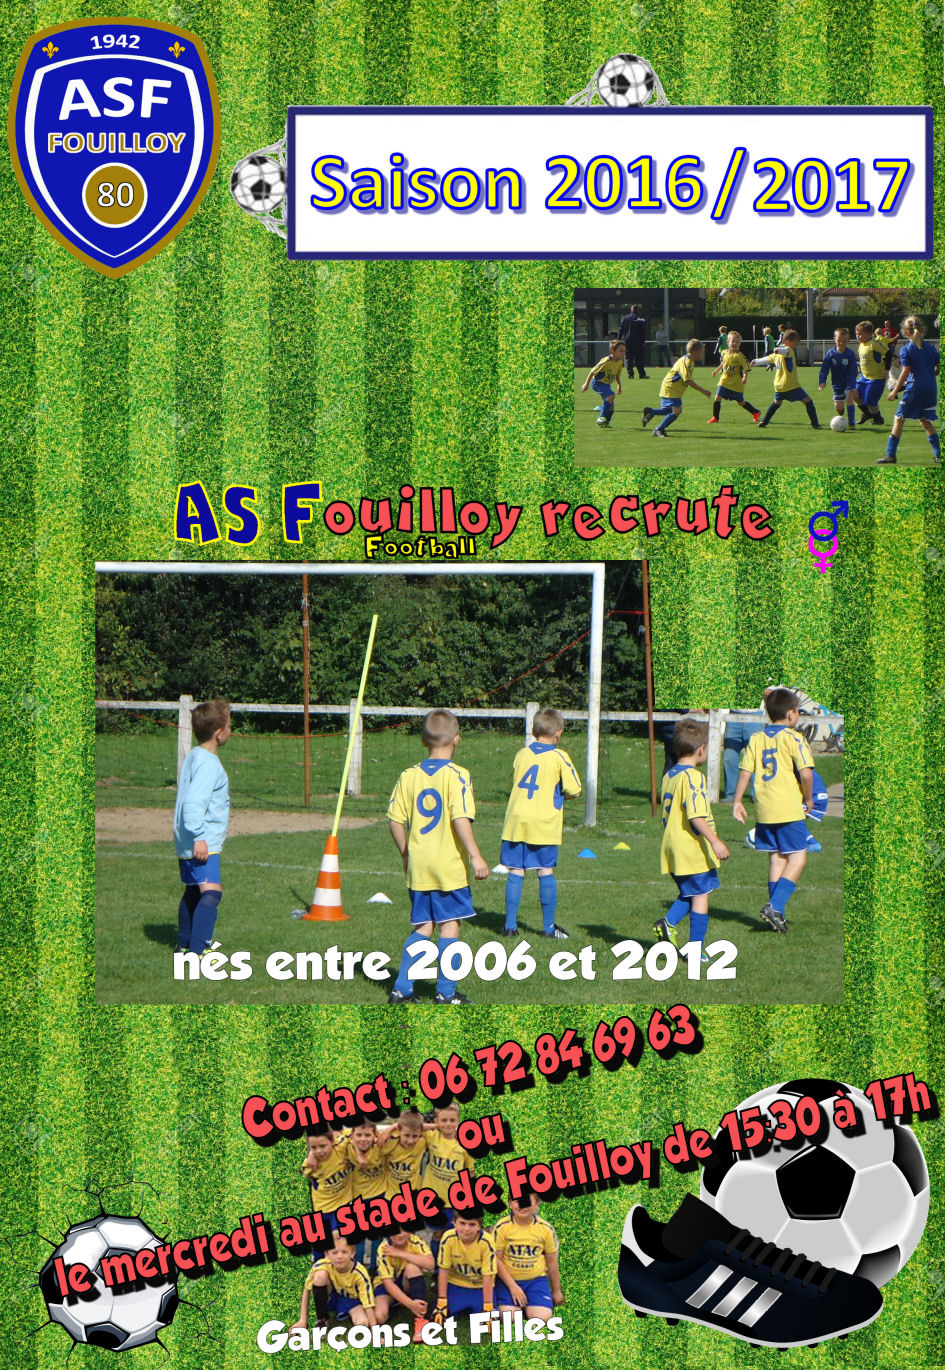 Recrutement Football Fouilloy 80800